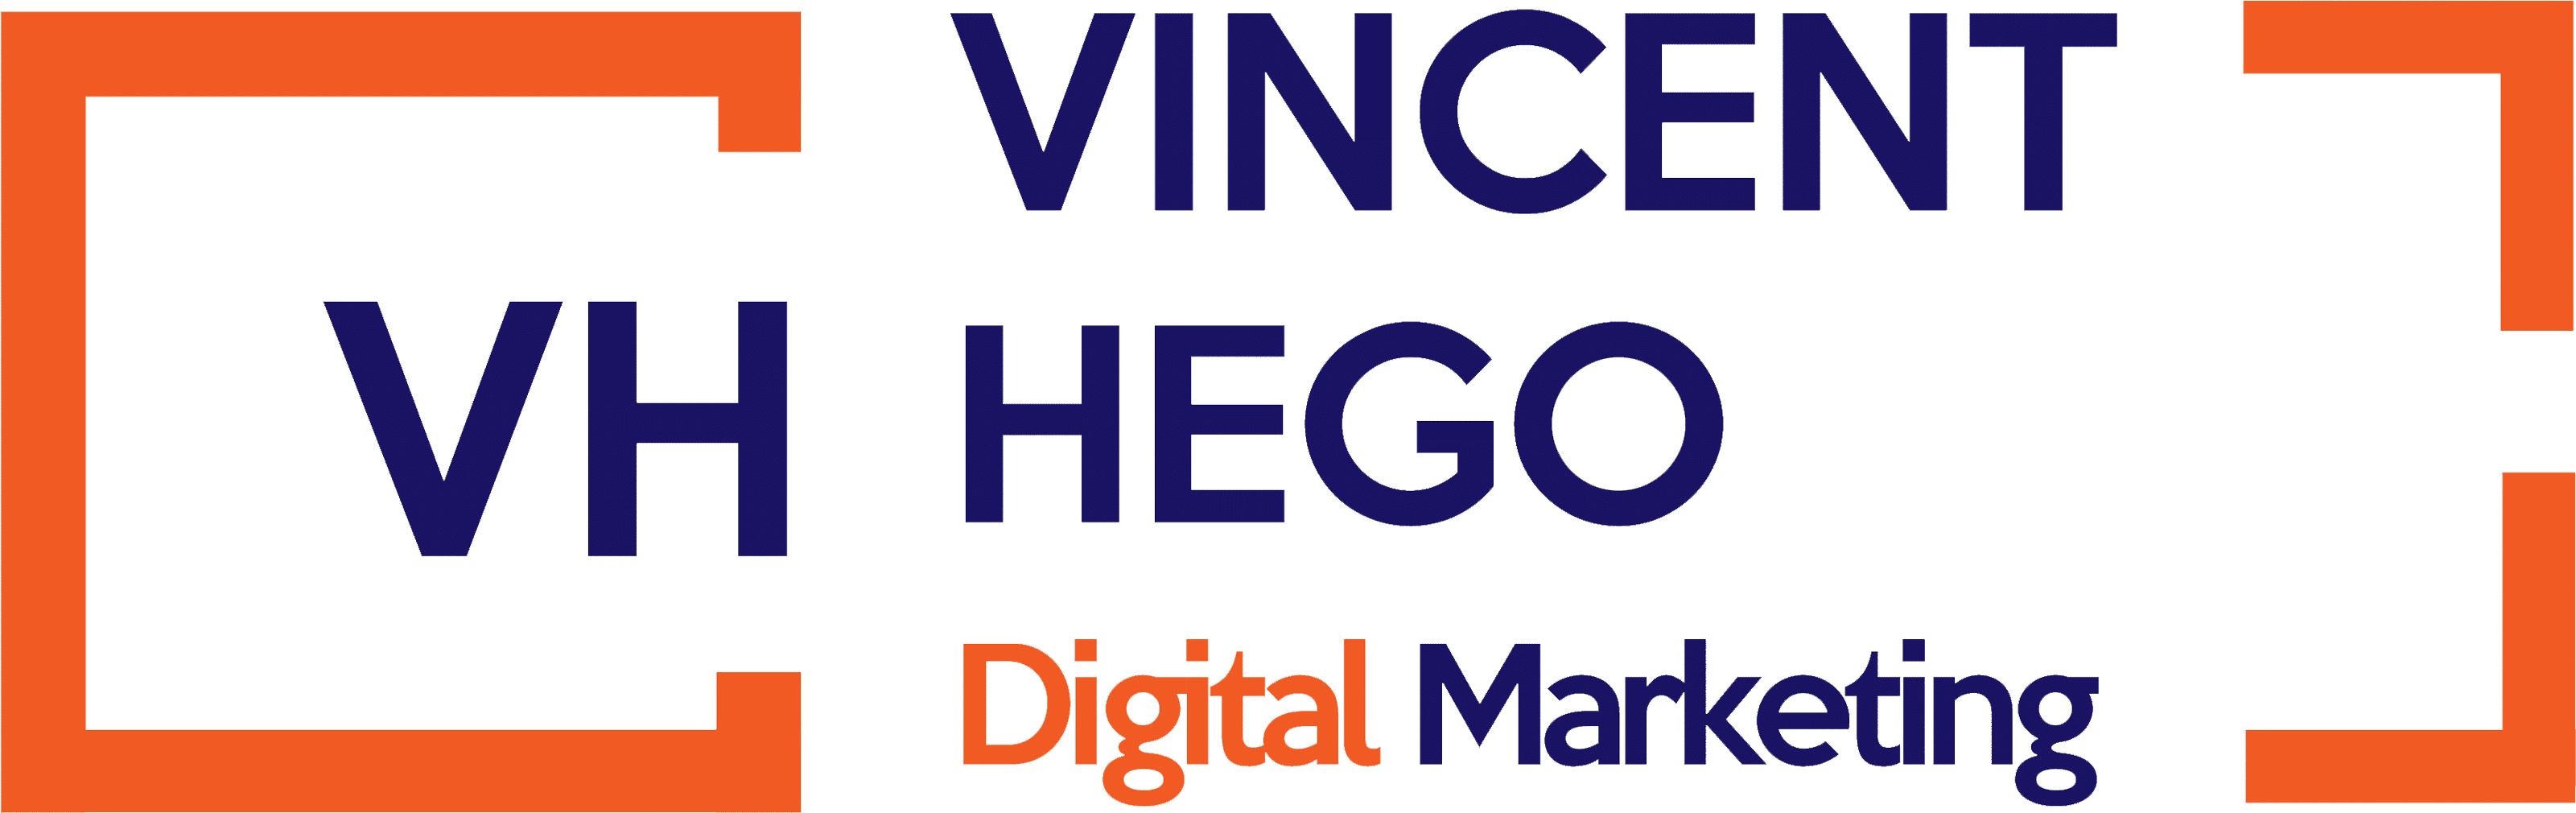 vincent hego marketing digital logo header